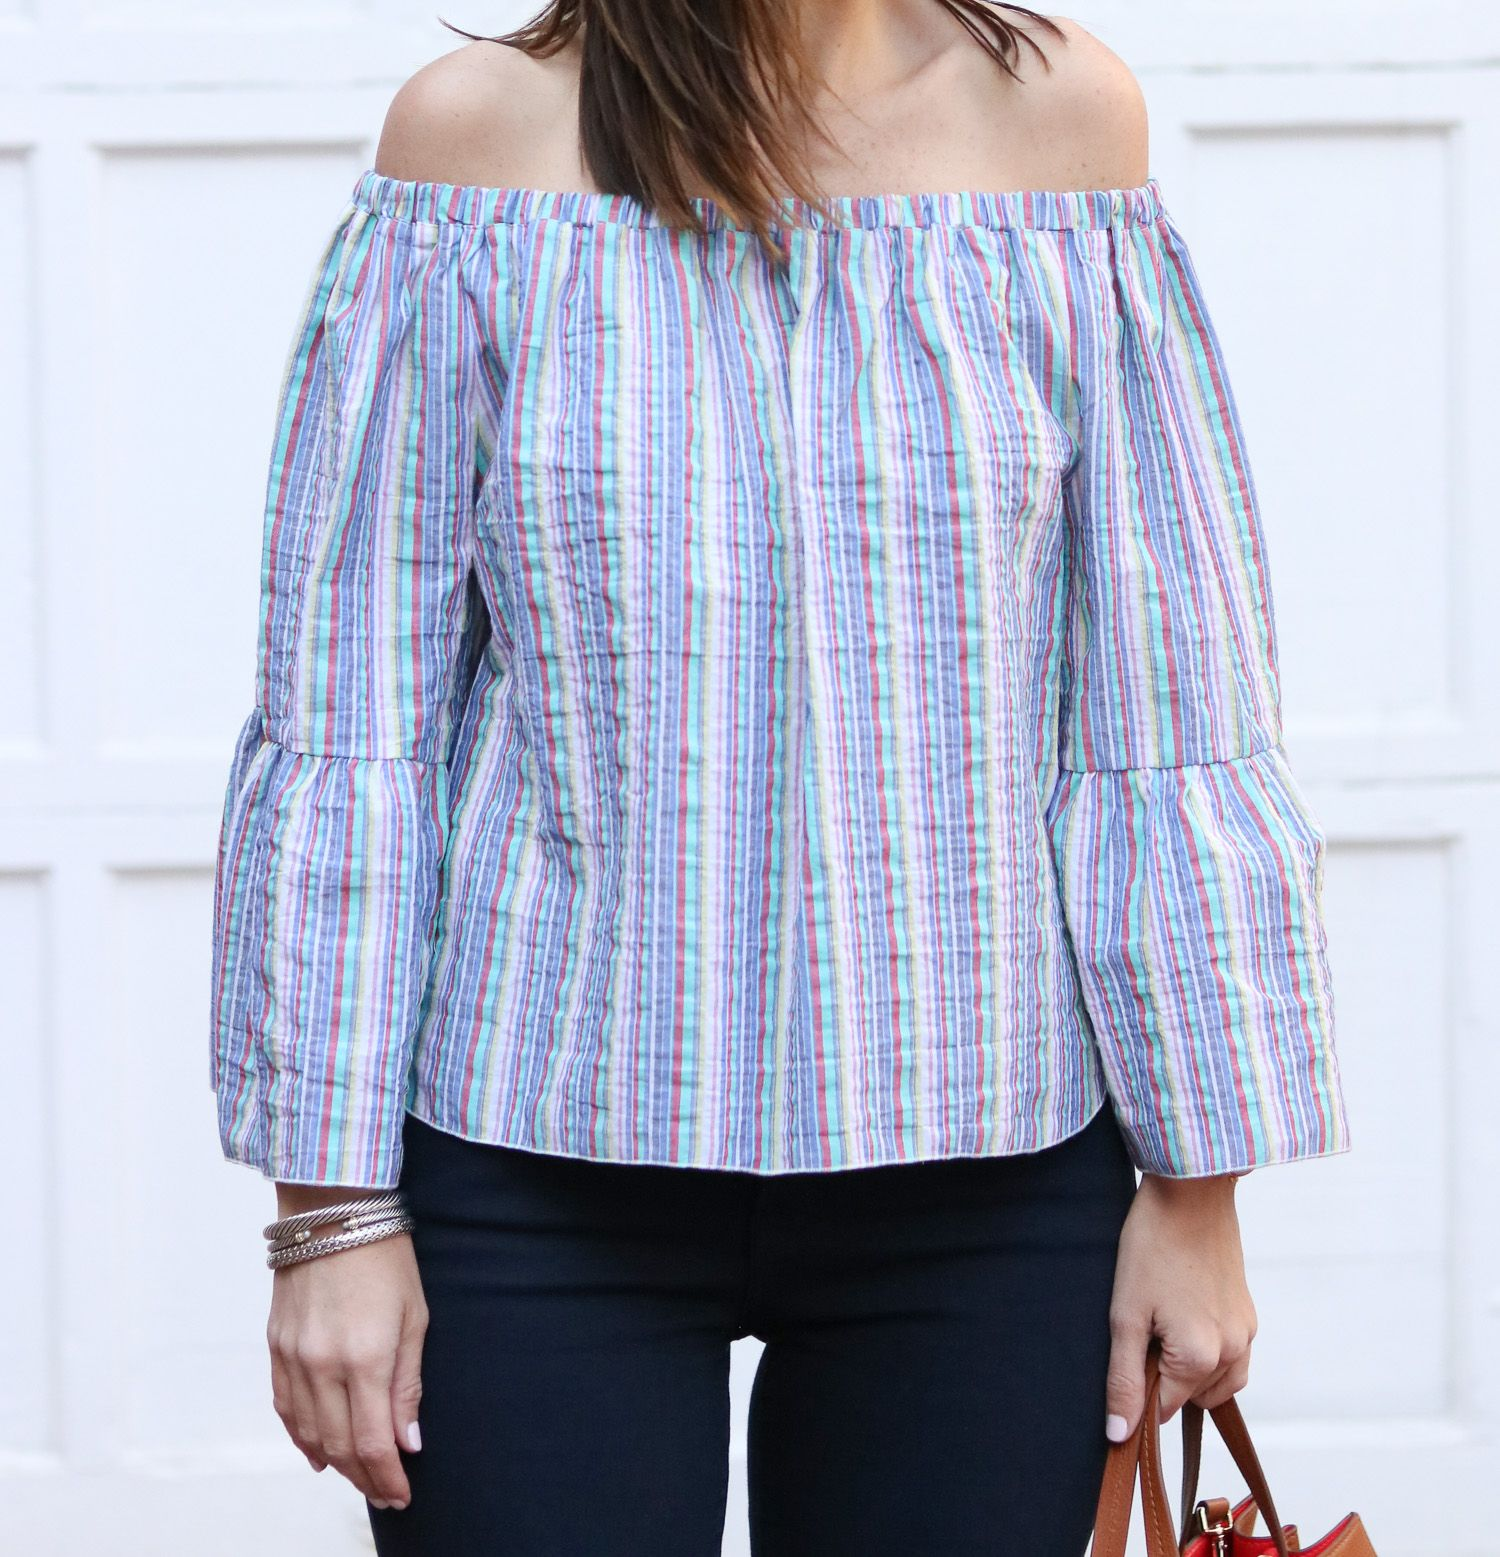 515d9995e139e Striped Off the Shoulder Top  cobaltchronicle